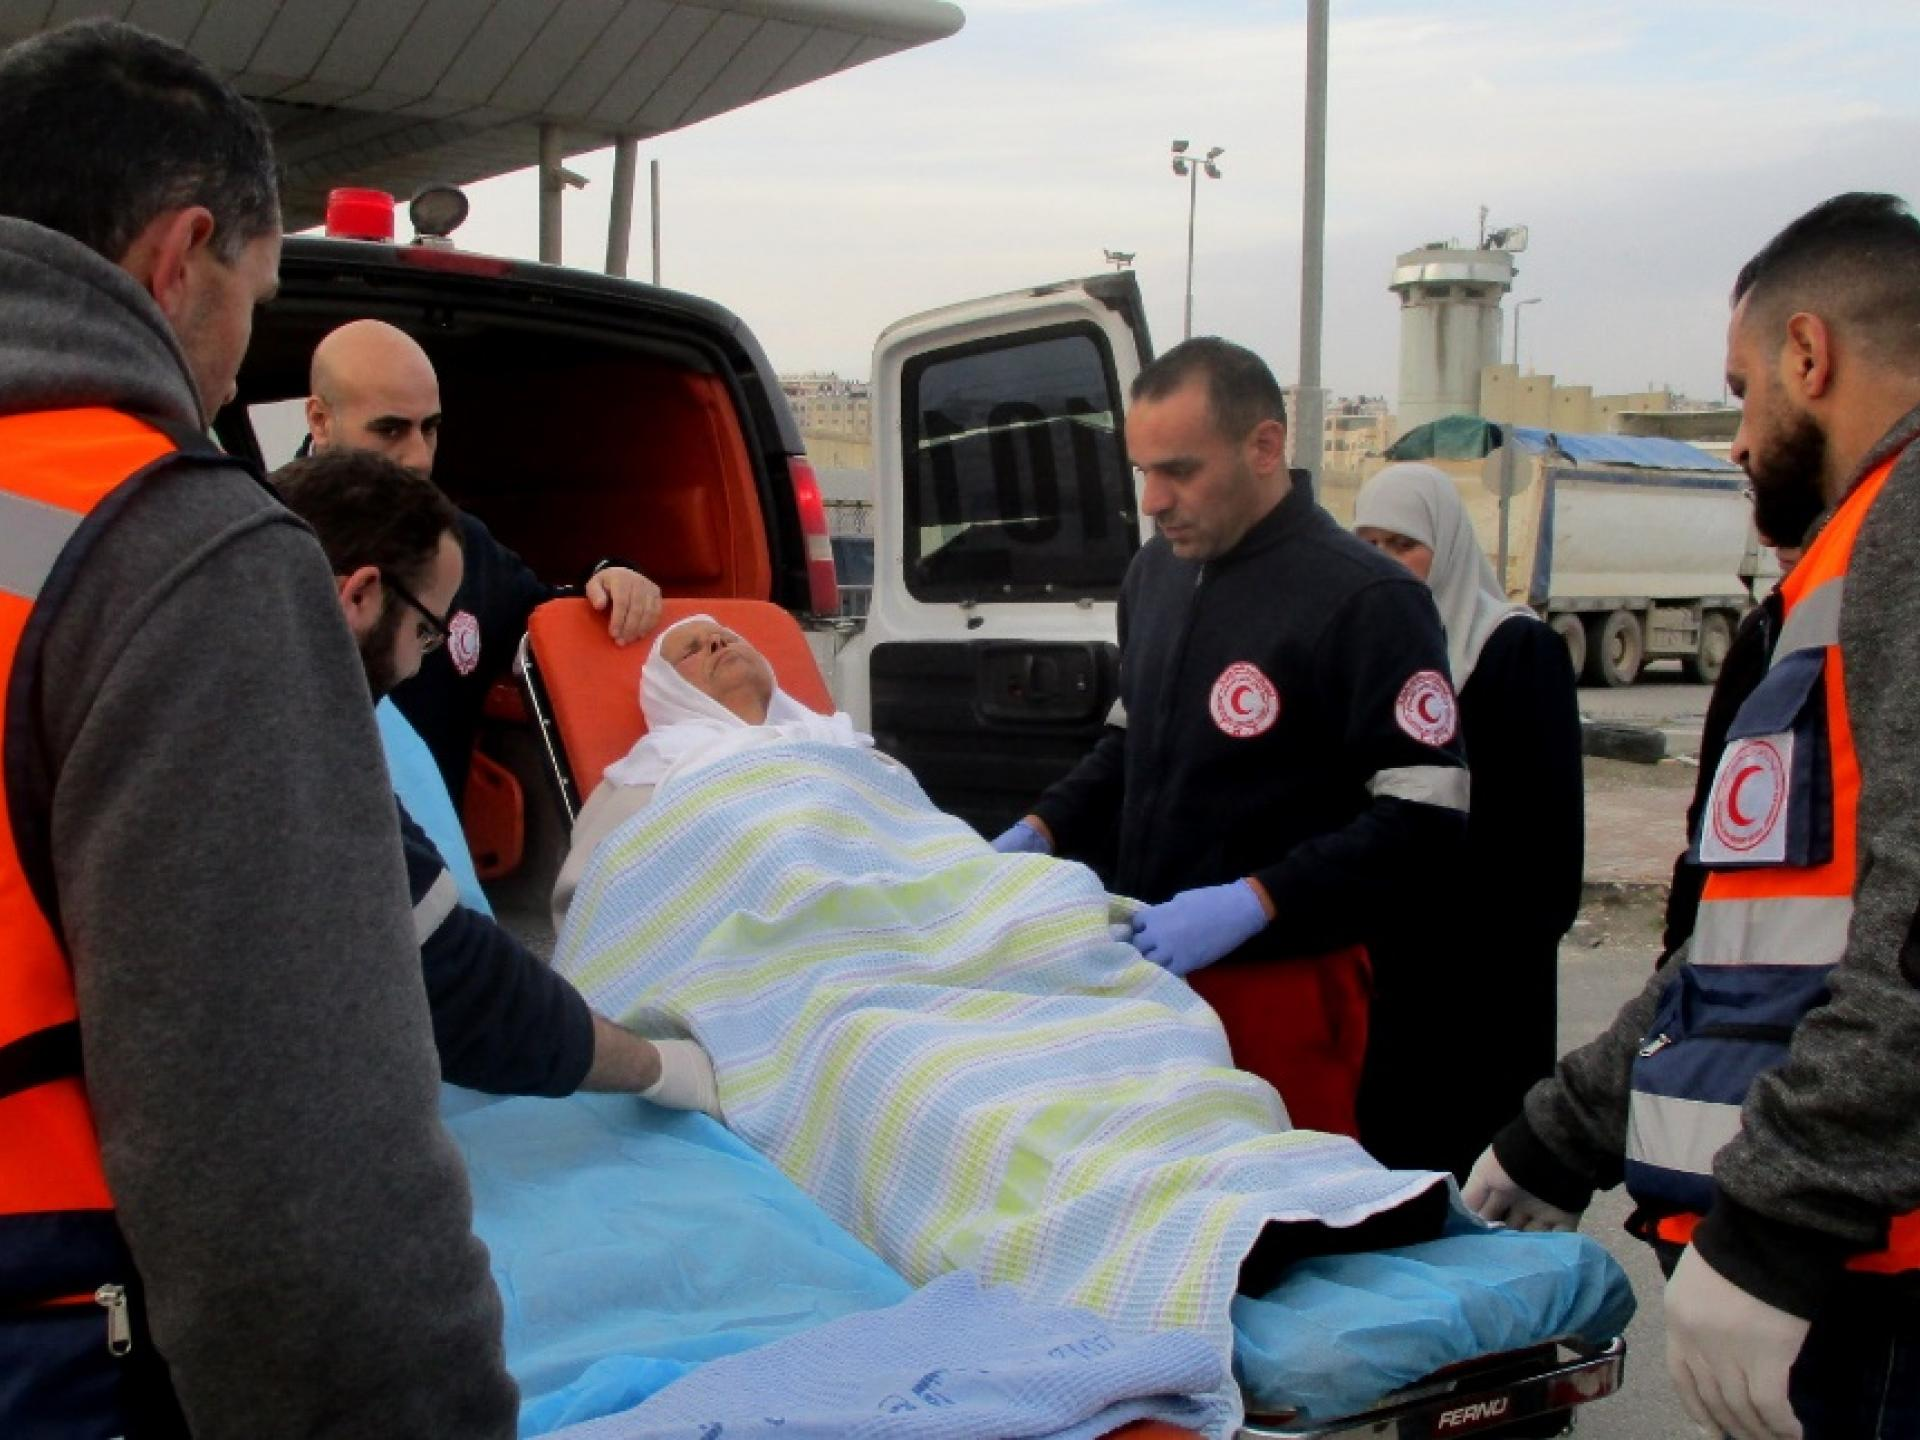 A woman cancer patient between the ambulances